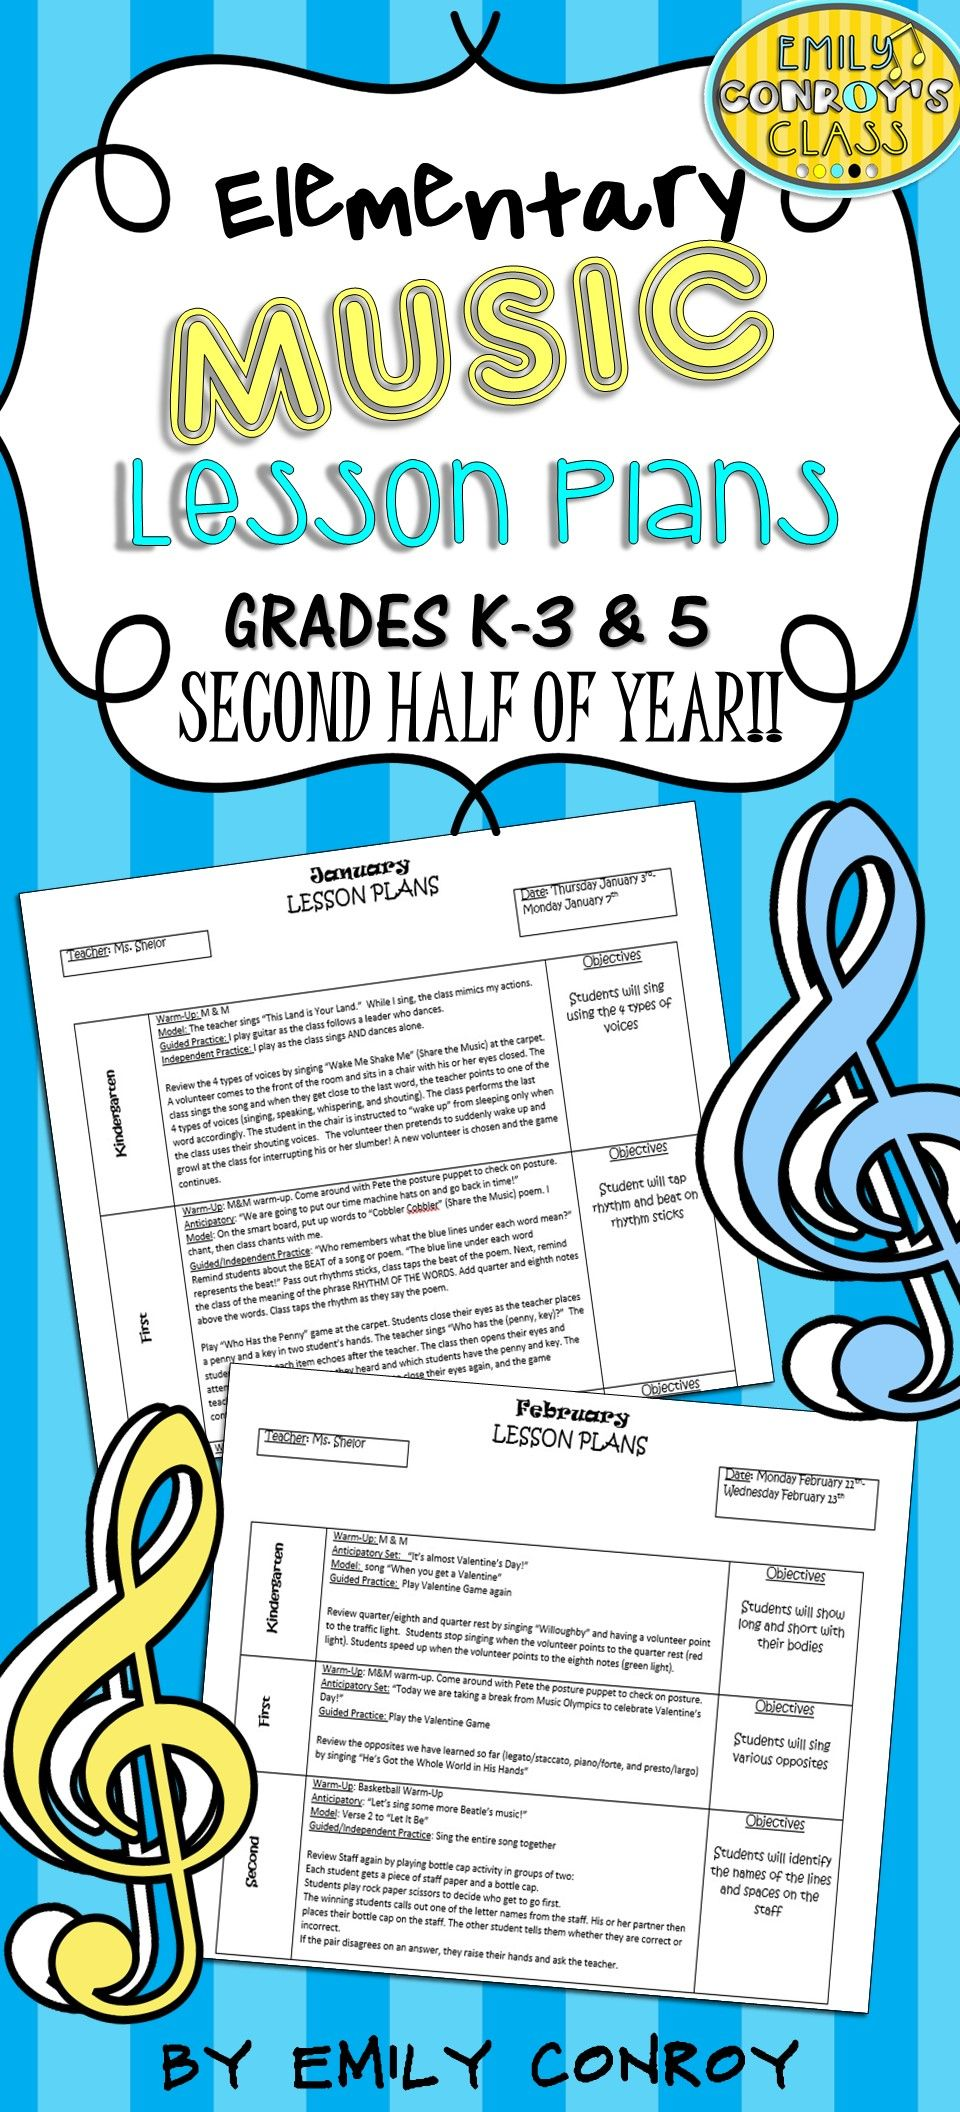 Elementary Music Lessons Plans-These plans are creative ...